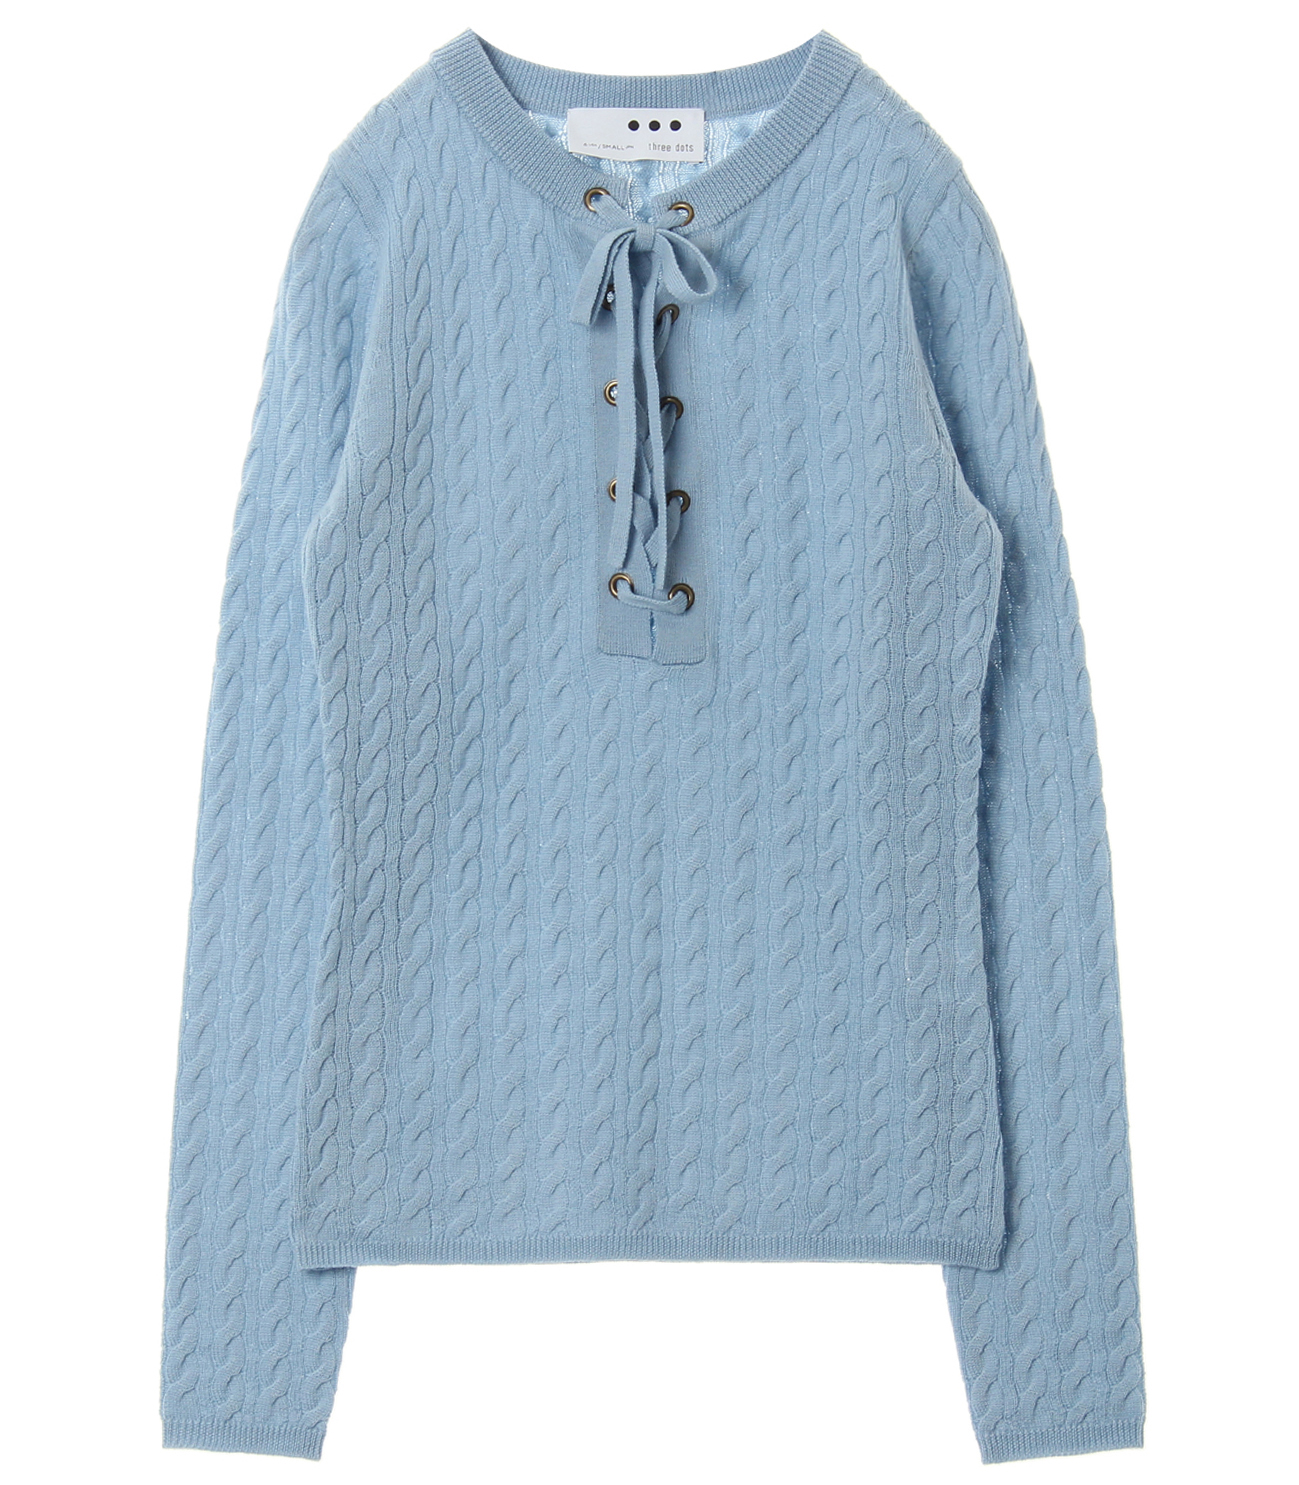 Wool rib cable front tie top 詳細画像 blue 1